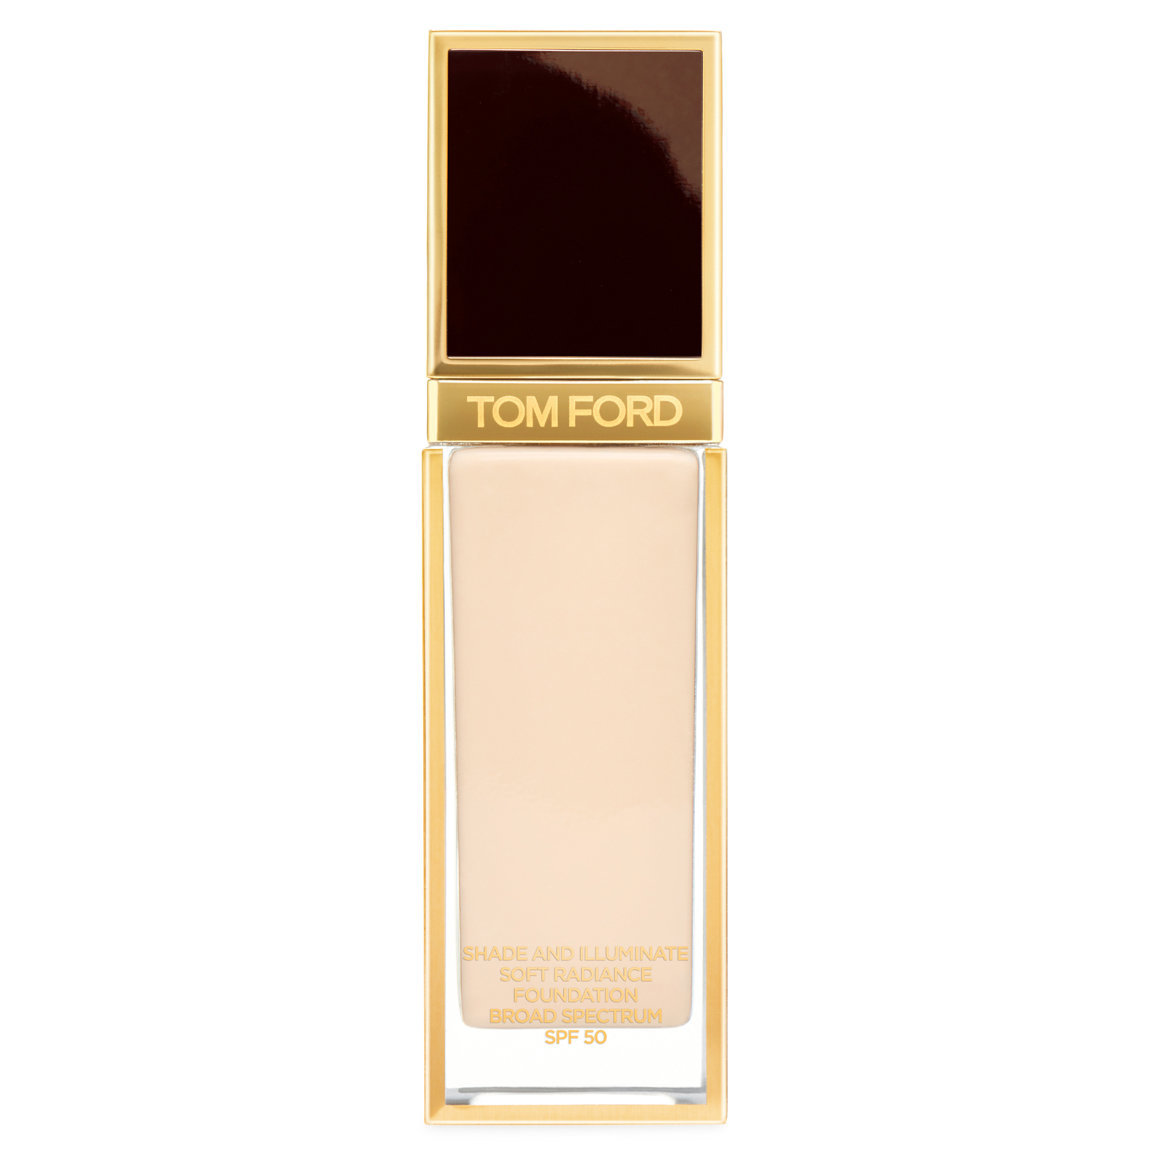 TOM FORD Shade & Illuminate Soft Radiance Foundation SPF 50 0.0 Pearl alternative view 1.